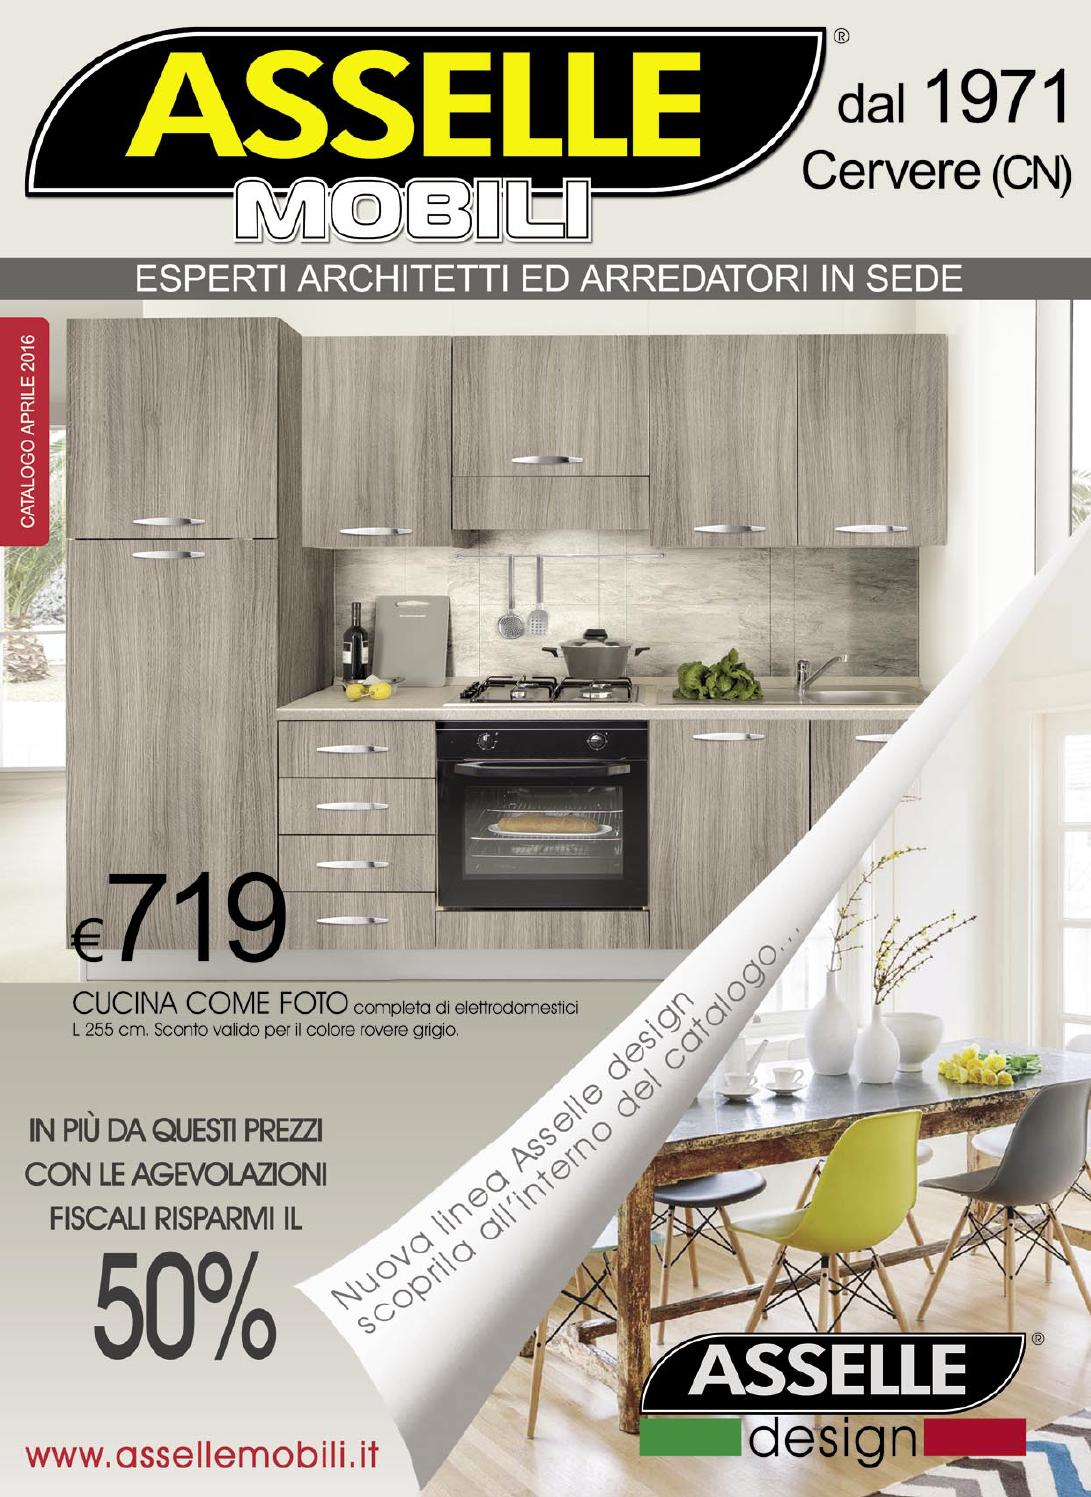 asselle mobili catalogo aprile 2016 by asselle mobili - issuu - Asselle Mobili Cucine